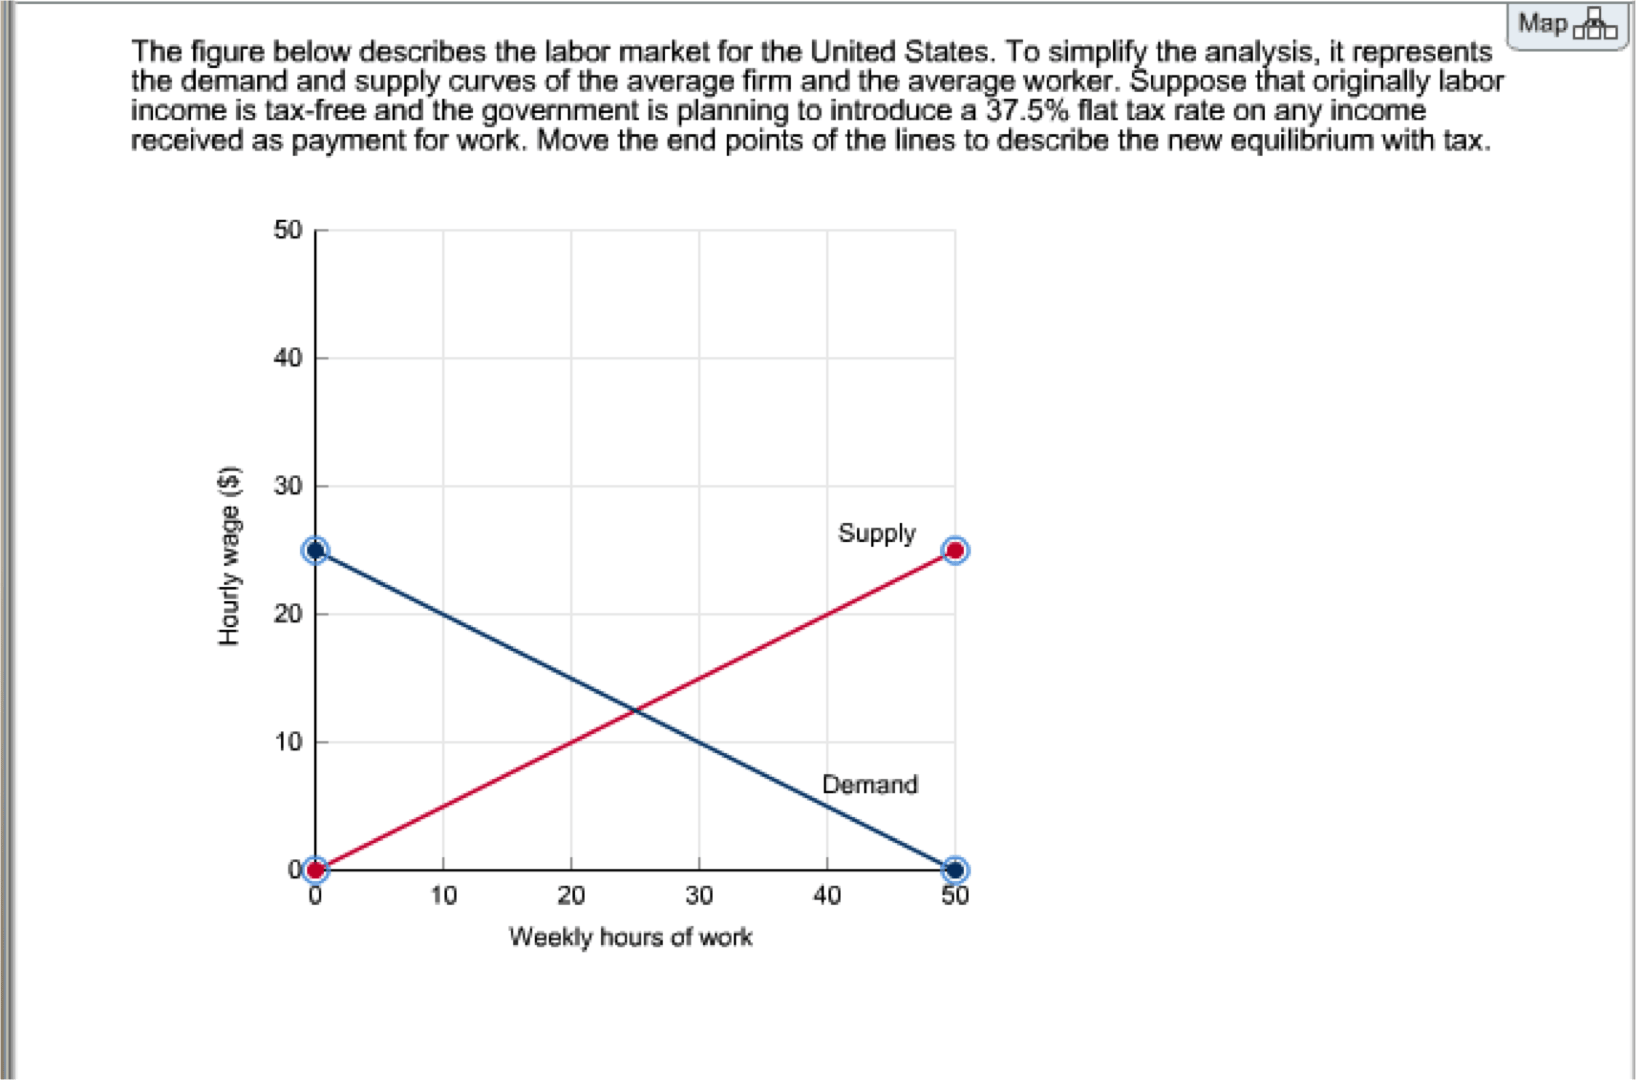 hight resolution of image for the figure below describes the labor market for the united states to simplify